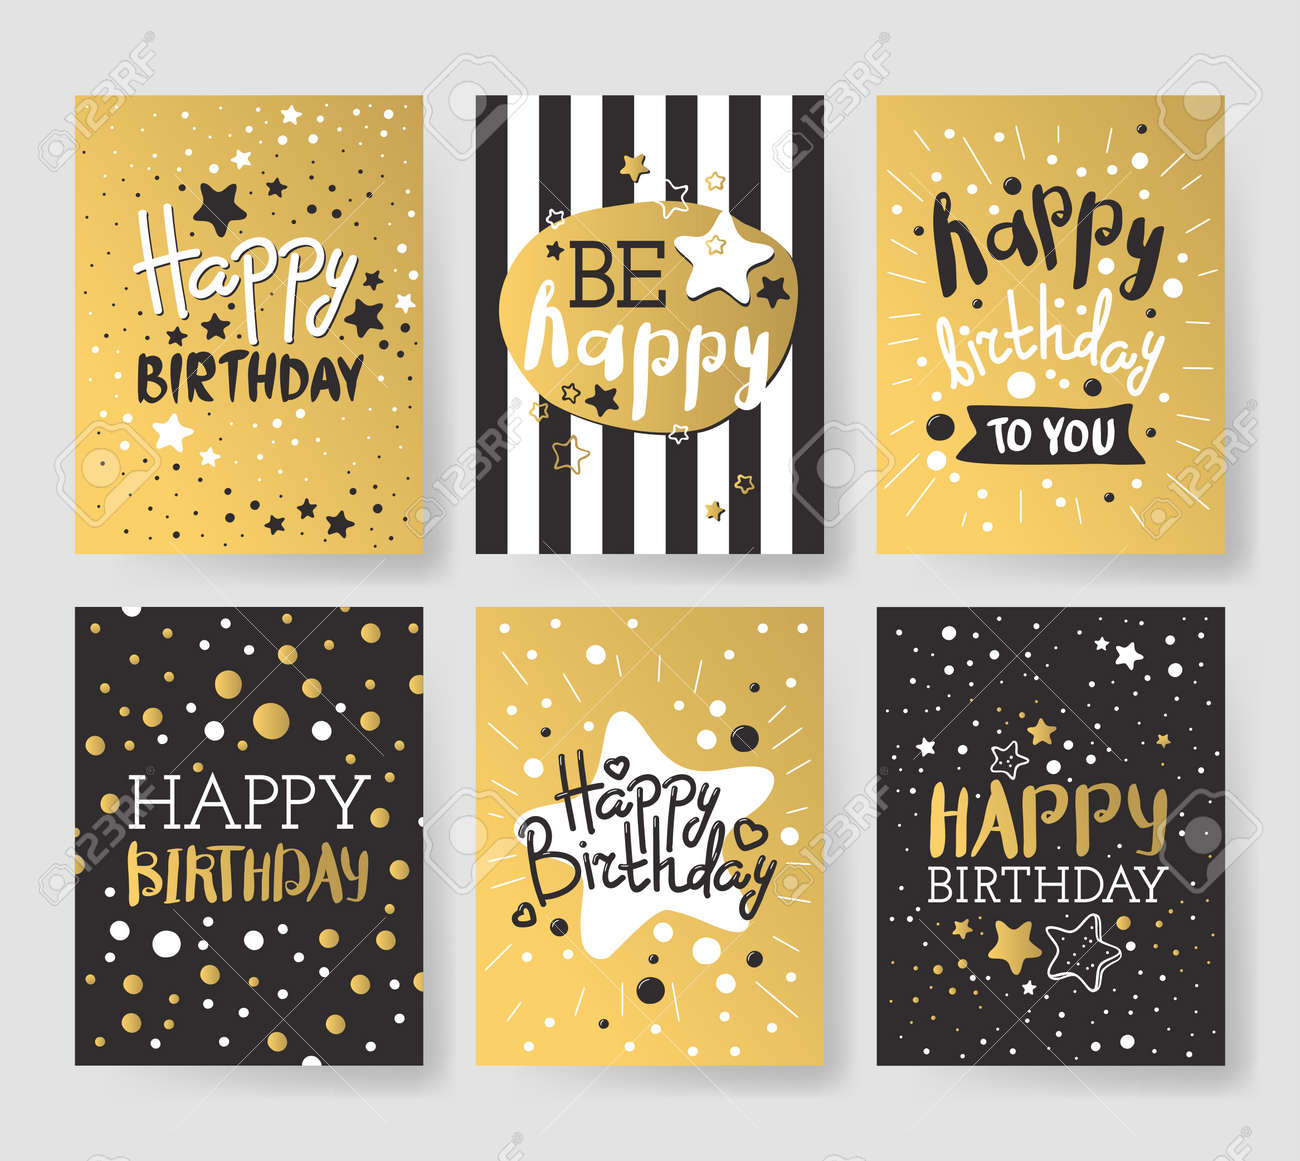 Beautiful birthday invitation cards design gold and black colors beautiful birthday invitation cards design gold and black colors birthday vector greeting card decoration stopboris Image collections